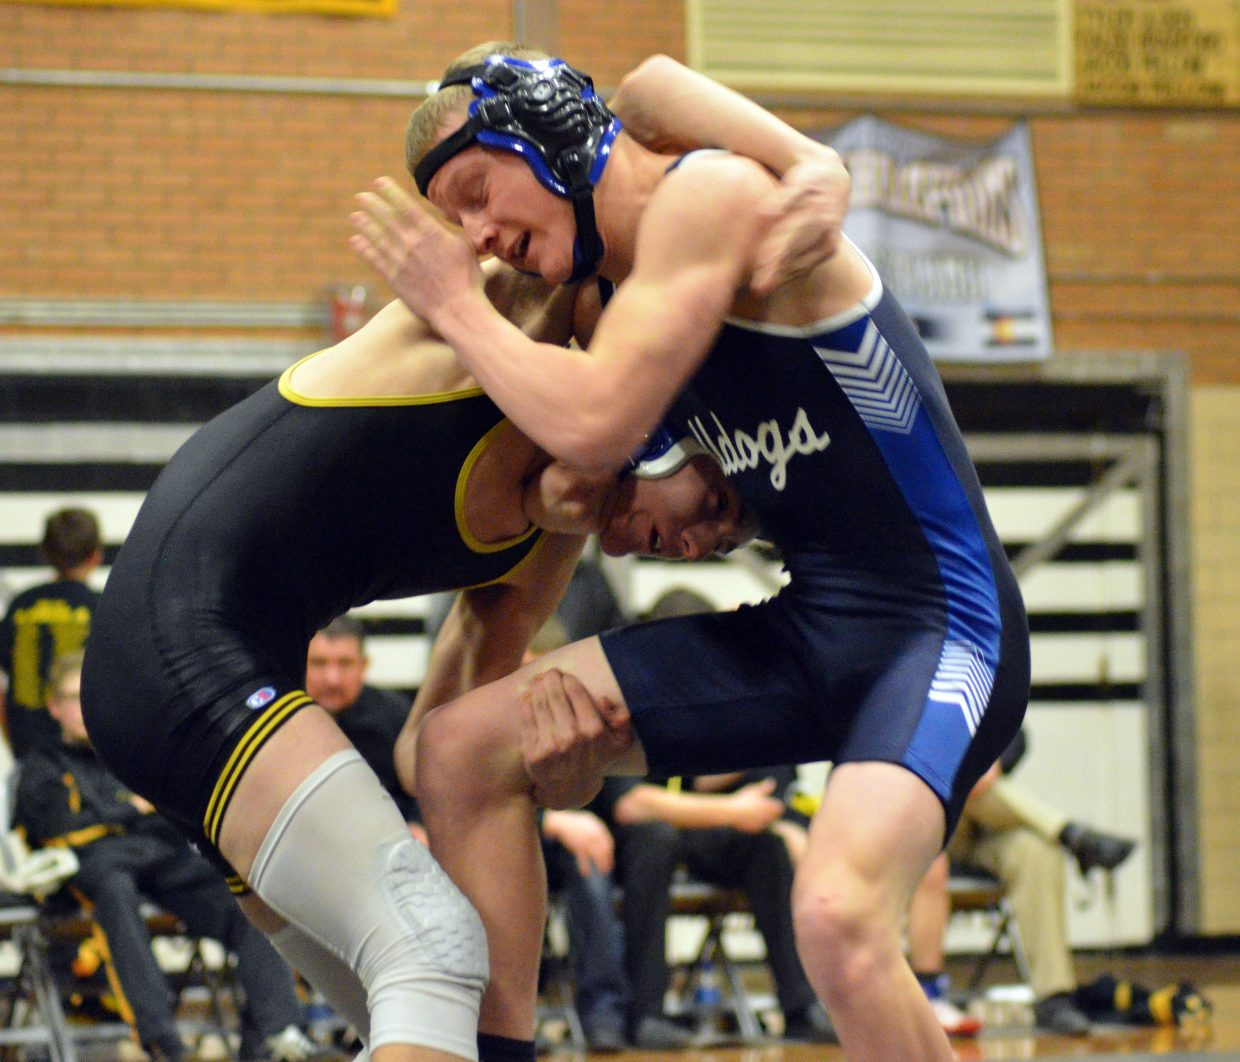 Moffat County High School's Isiaih Herod gets into the mix with Meeker's Tyson Portwood.